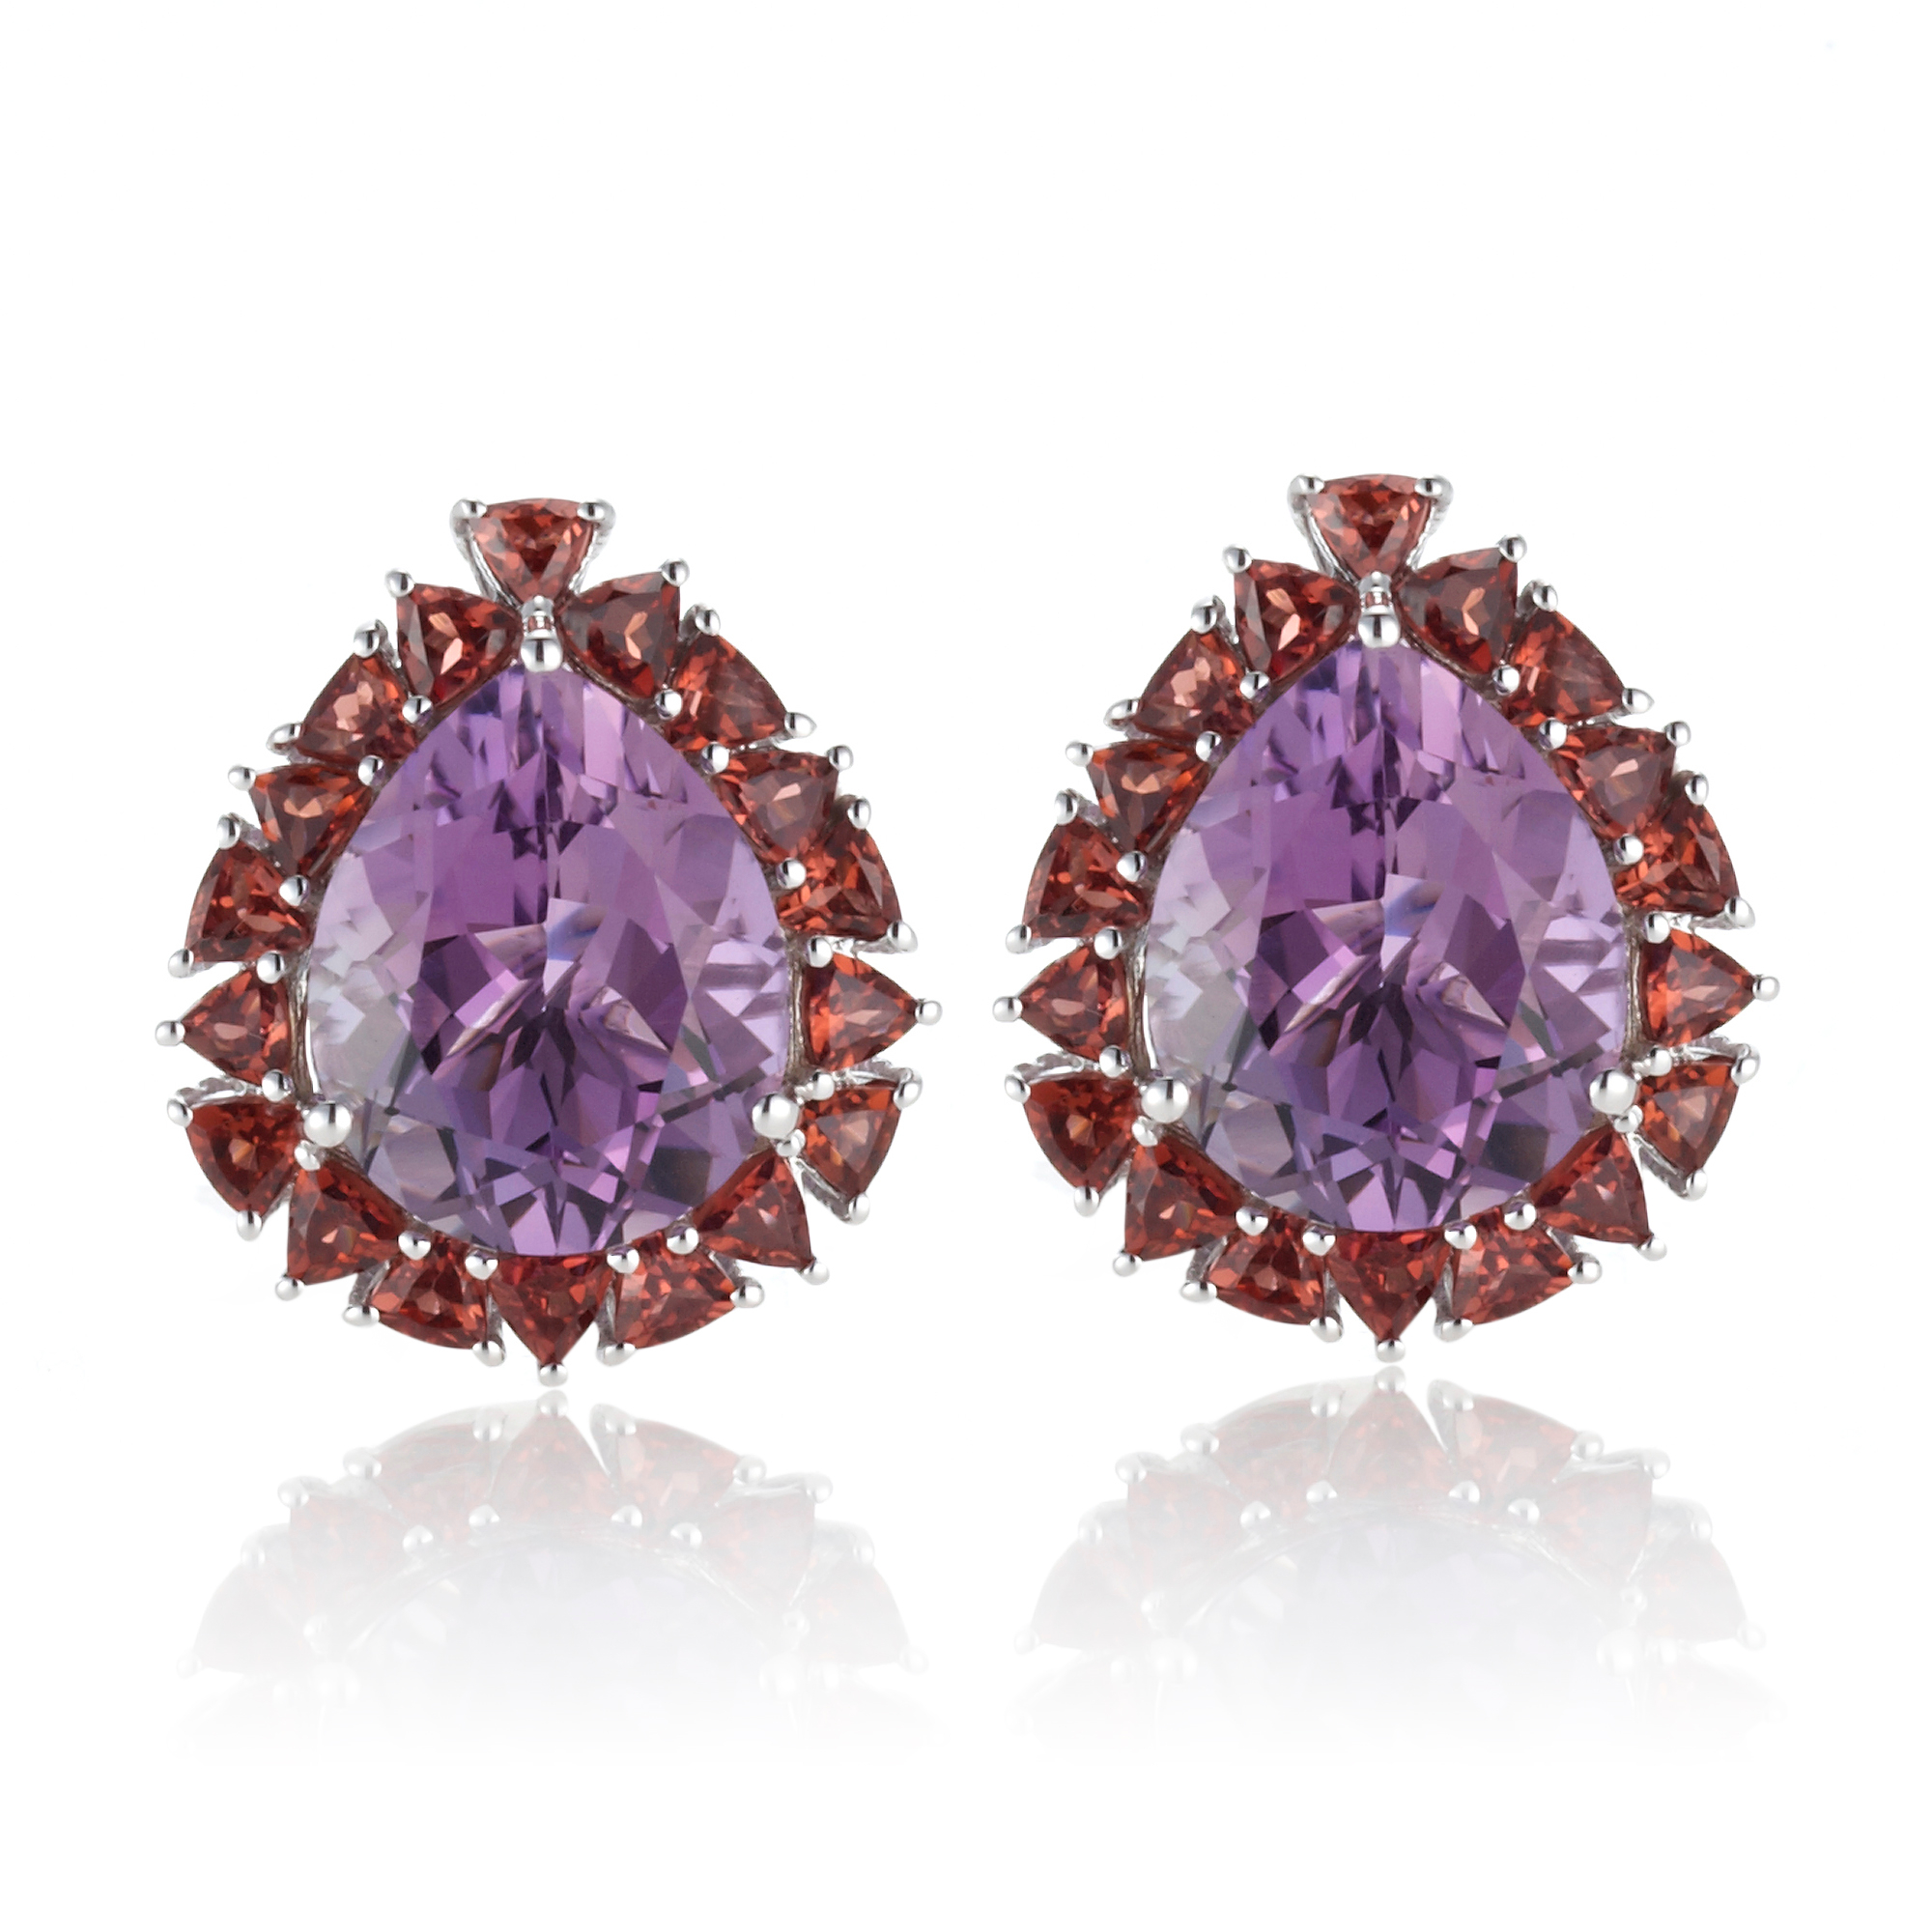 Gump's Amethyst & Garnet Pear Halo Earrings